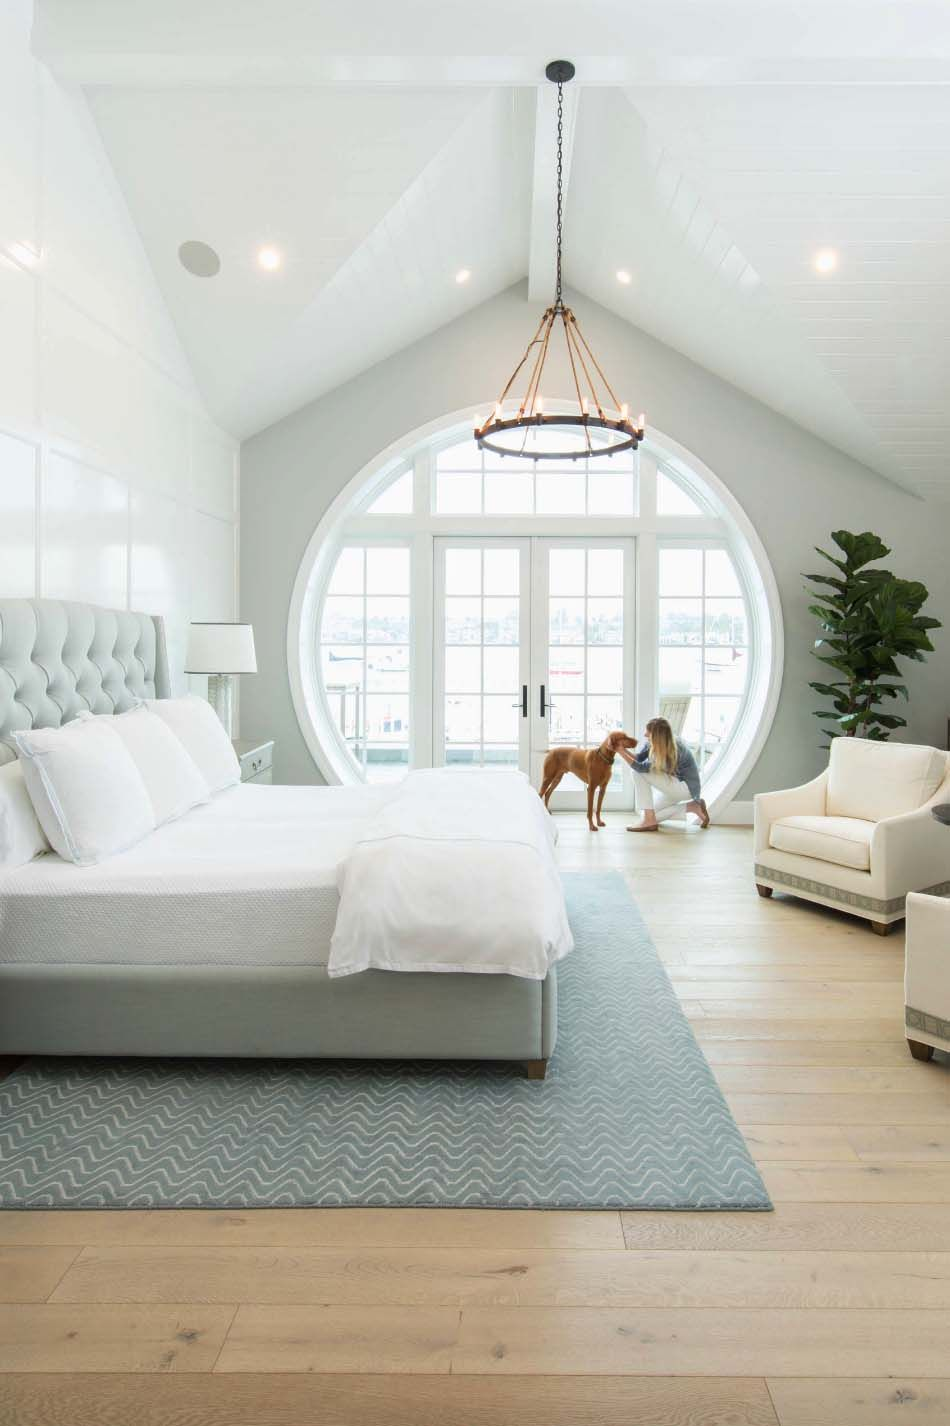 Cape Cod inspired home with beautiful Bayfront views in Newport Beach #bedroominspirations